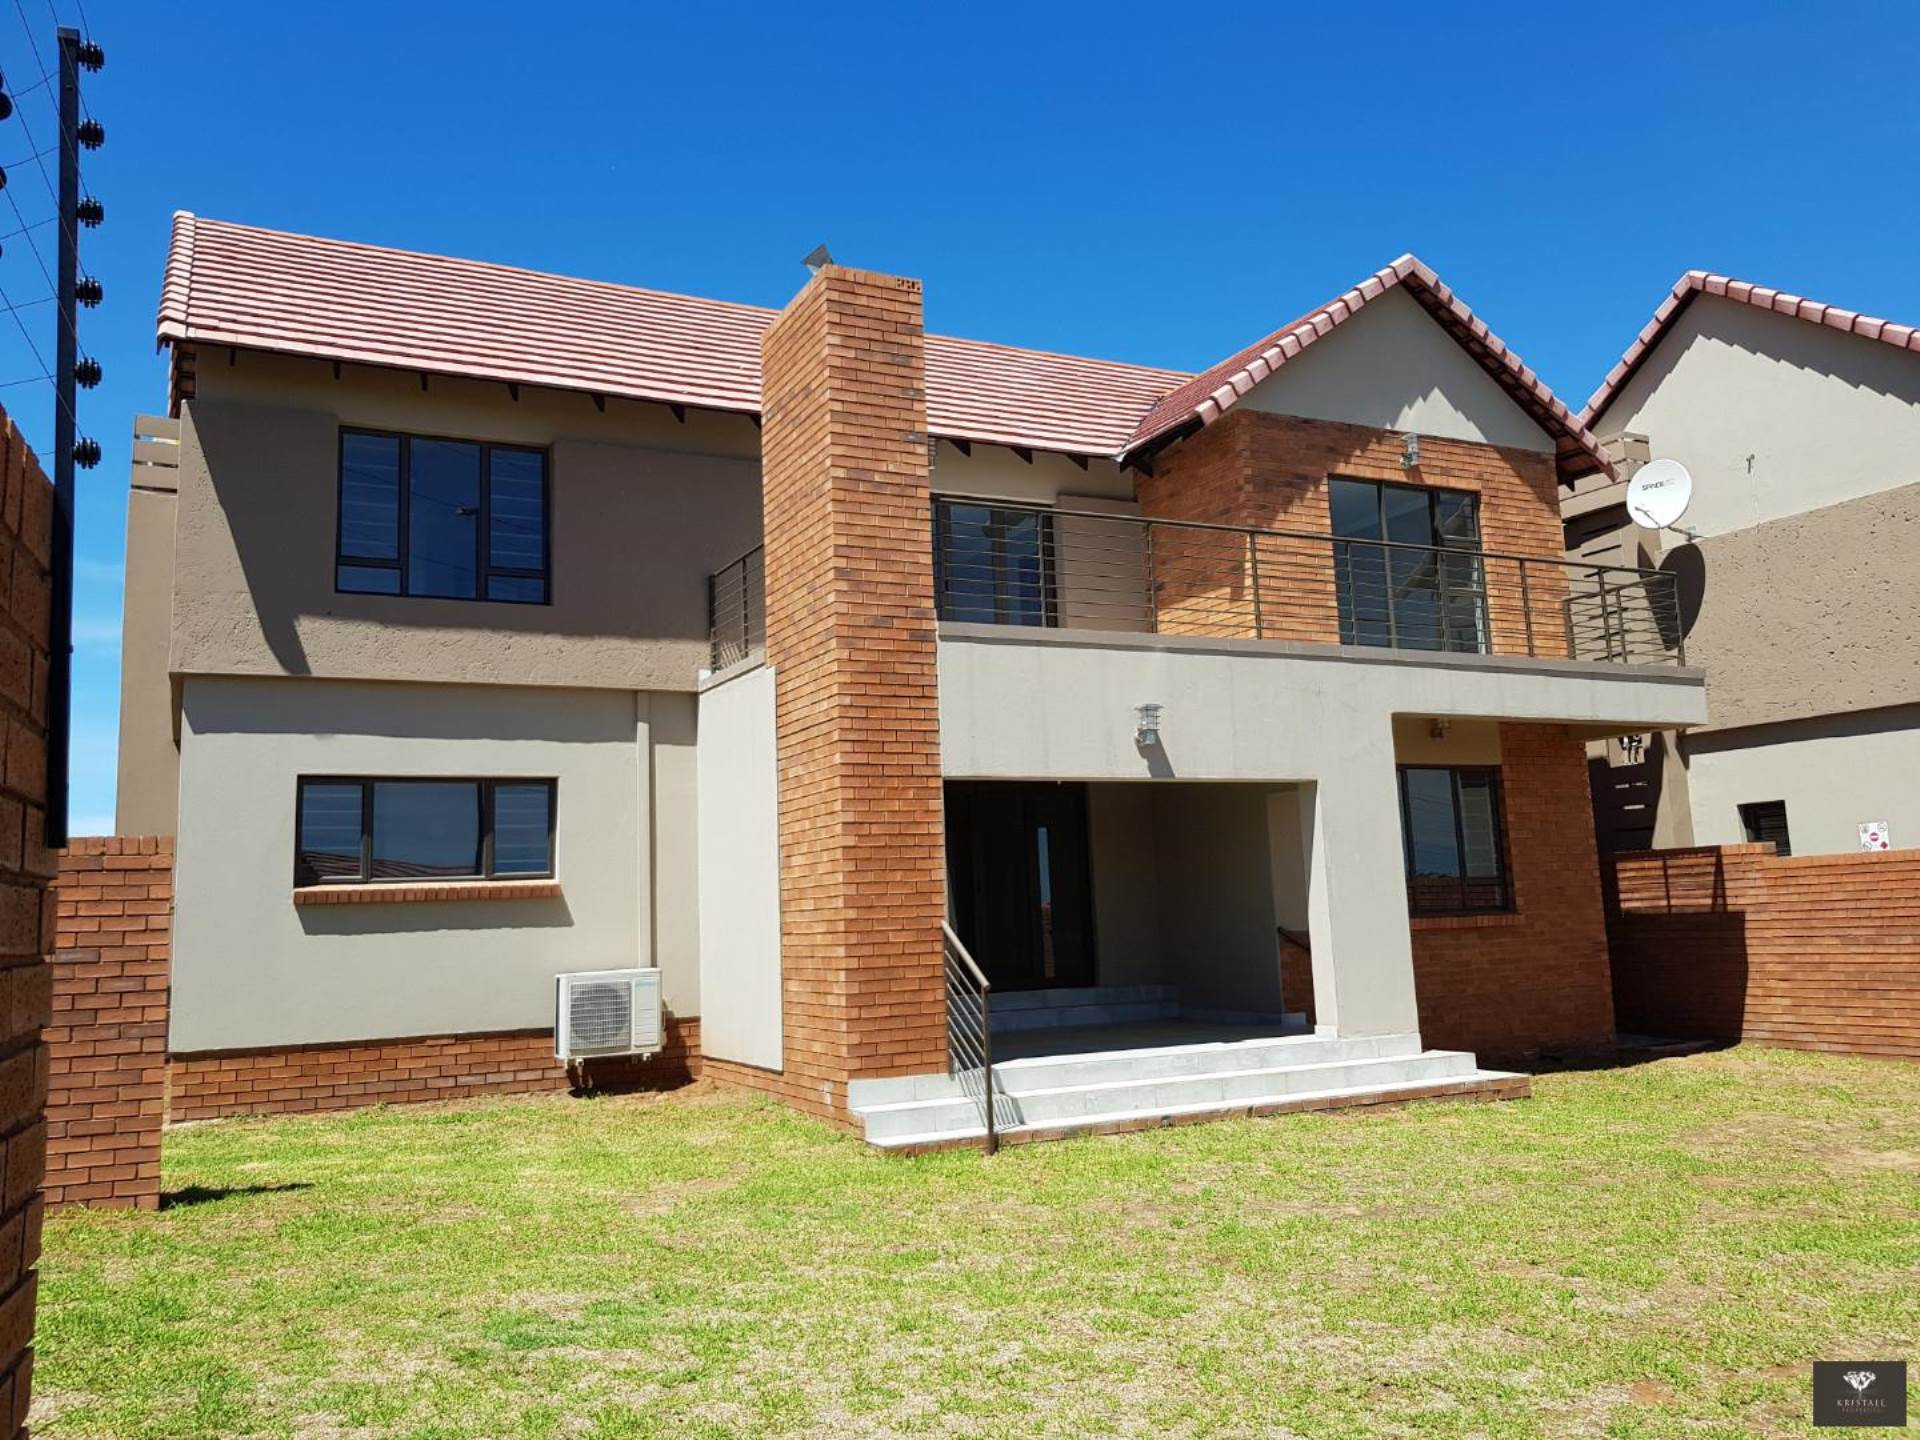 Front view of the duplex unit with braai room